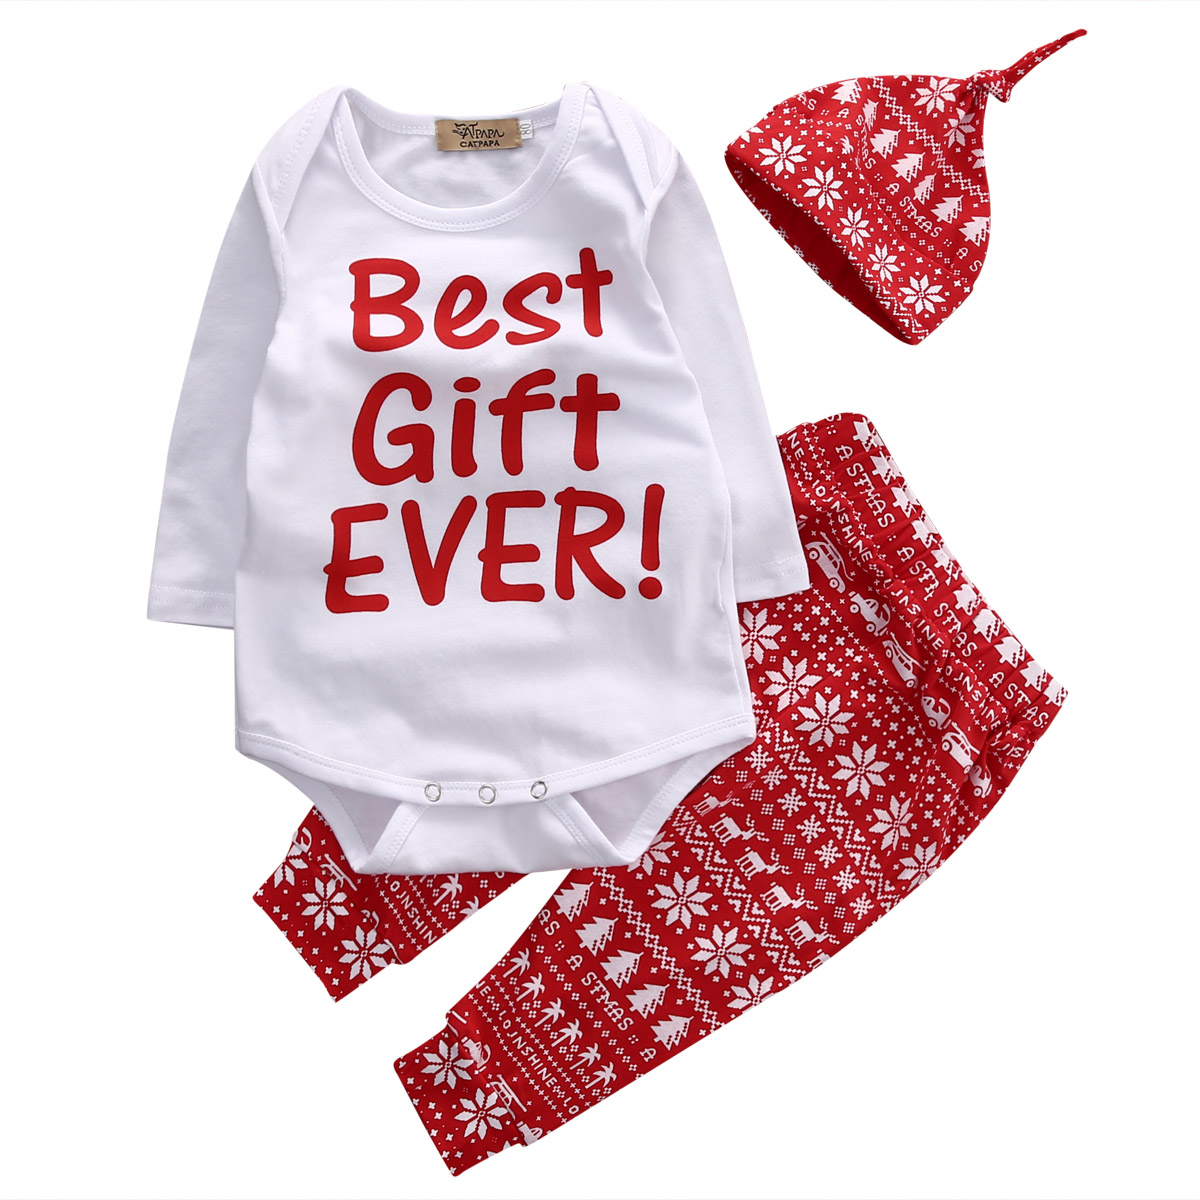 3pcs Newborn Baby Boy Girl 2018 Romper Best Gift Ever Tops+Long Pants Hat Outfit Set Xmas Christmas Autumn Clothes ZX 45